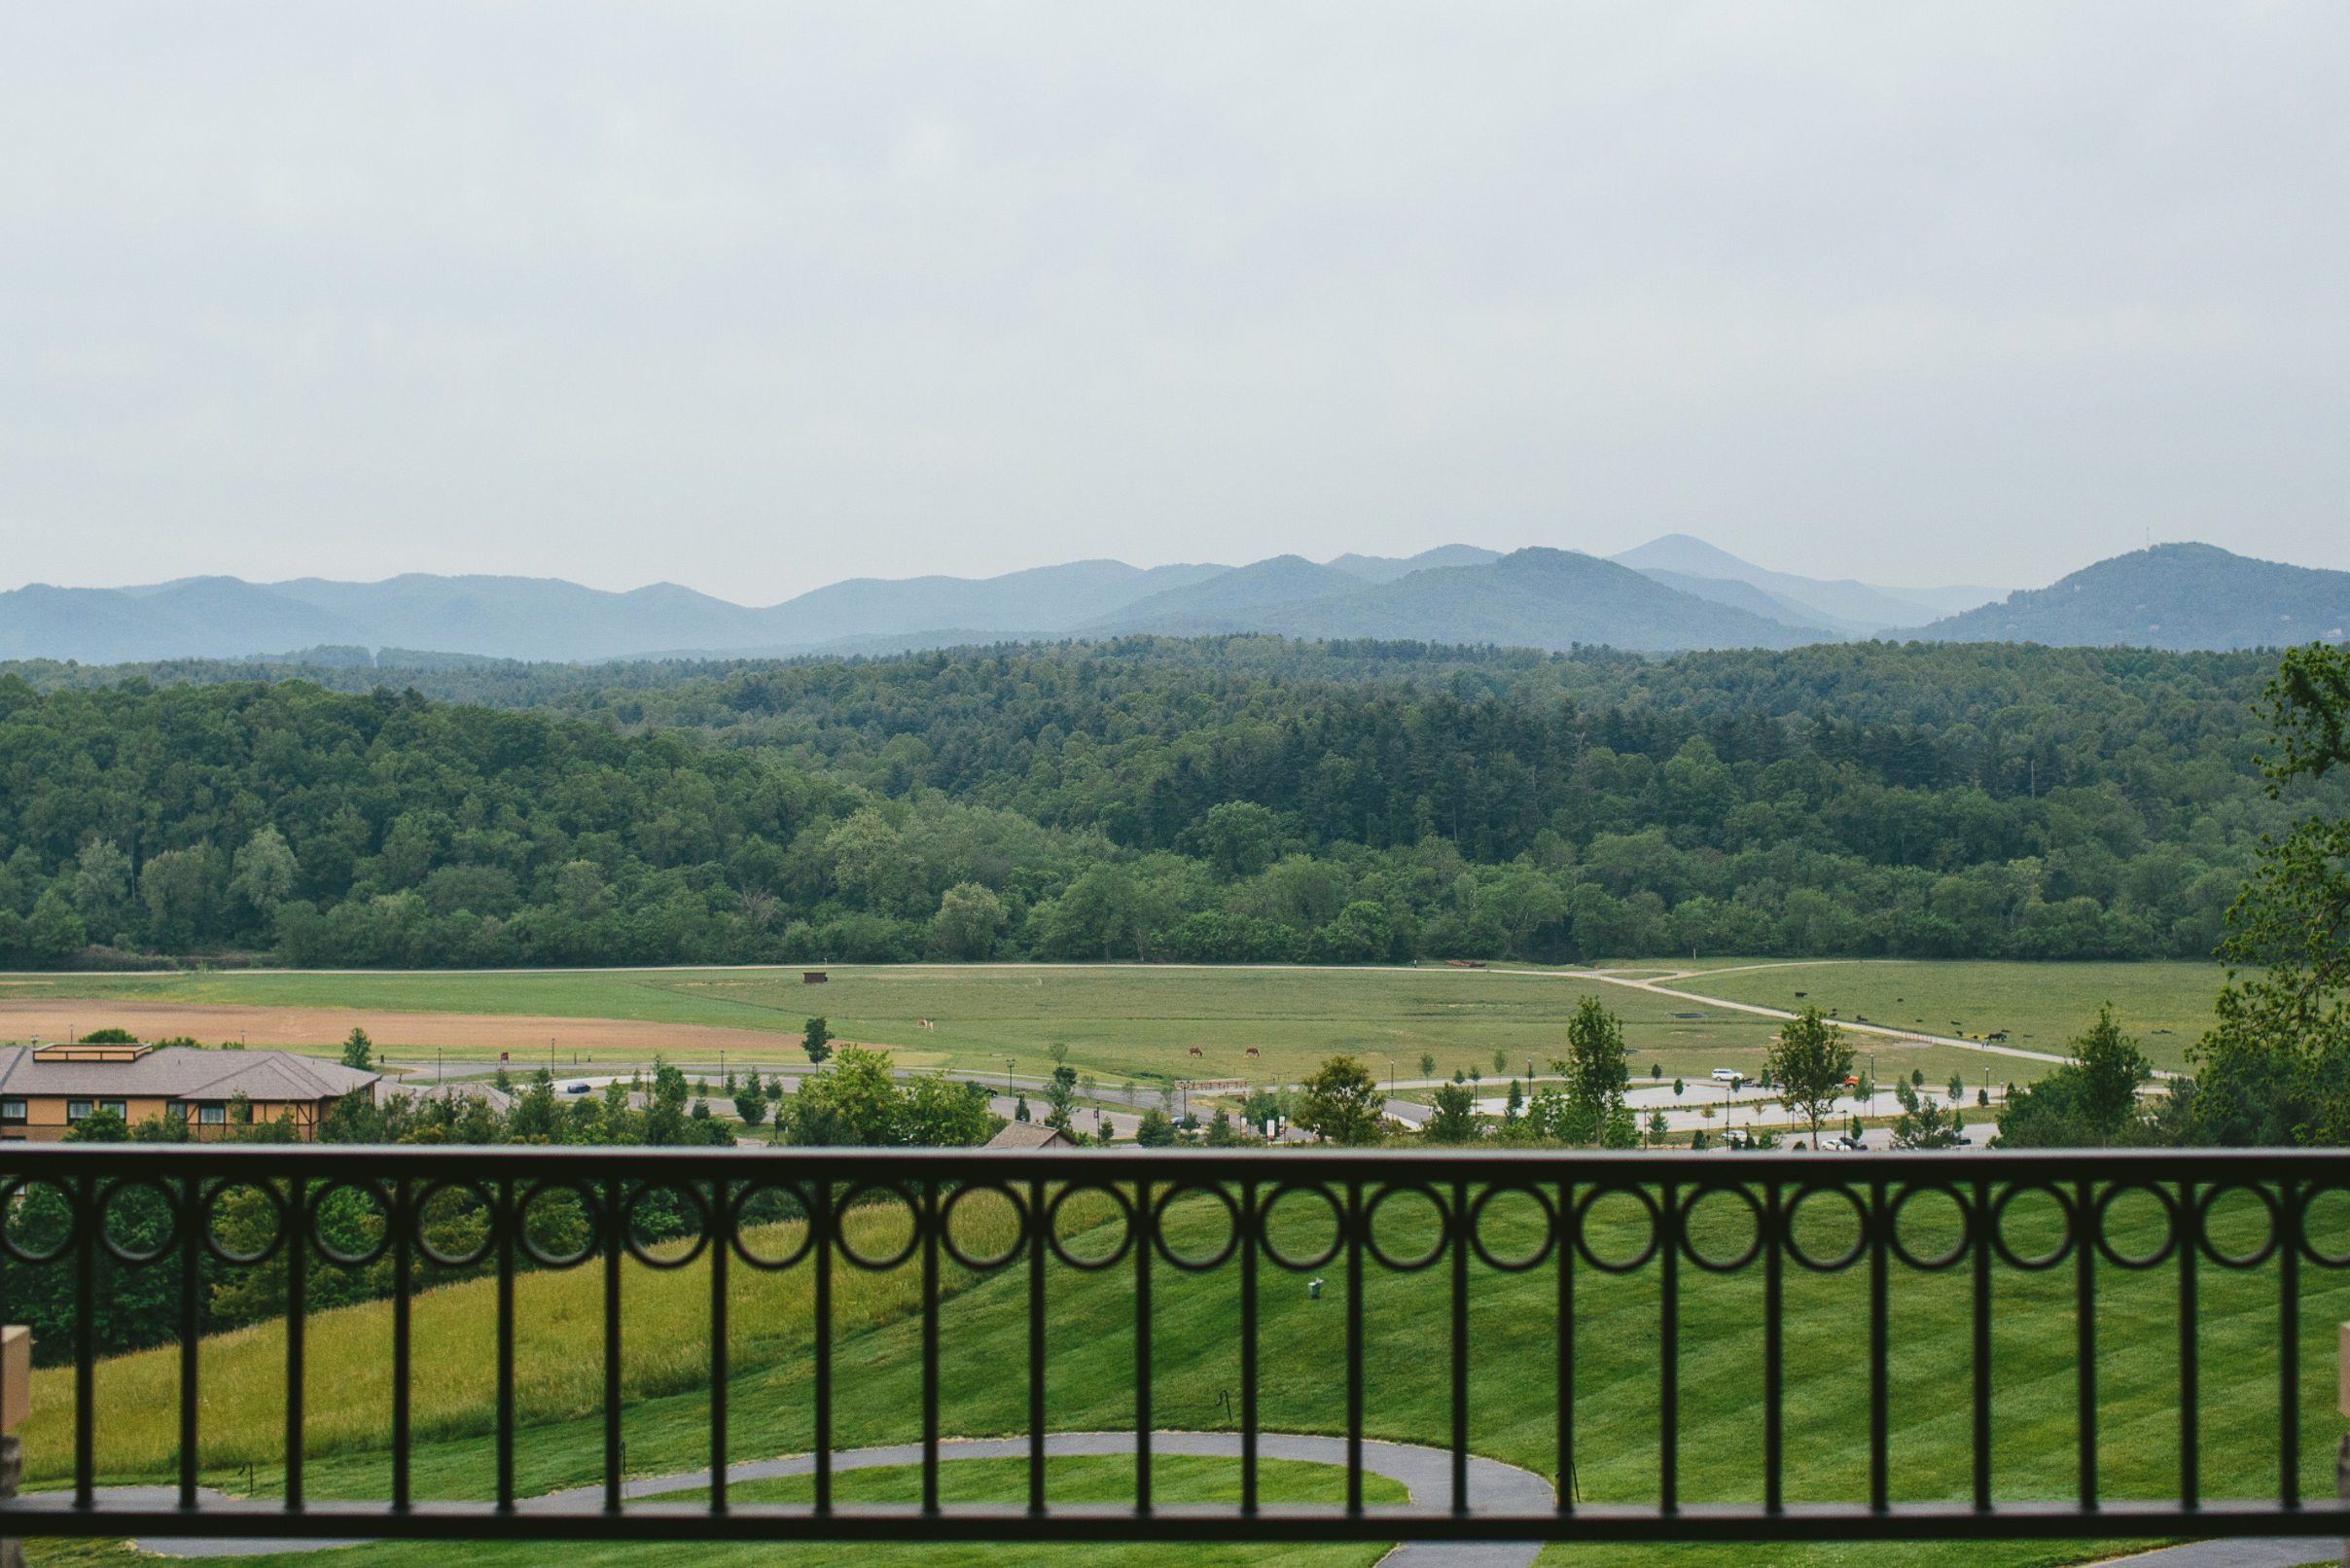 Asheville, Atlanta, Charlotte, New Orleans - Besides touring the famous mansion, Biltmore Estate offers horseback riding, skeet shooting and the Land Rover Experience as a few options to get off the beaten path.